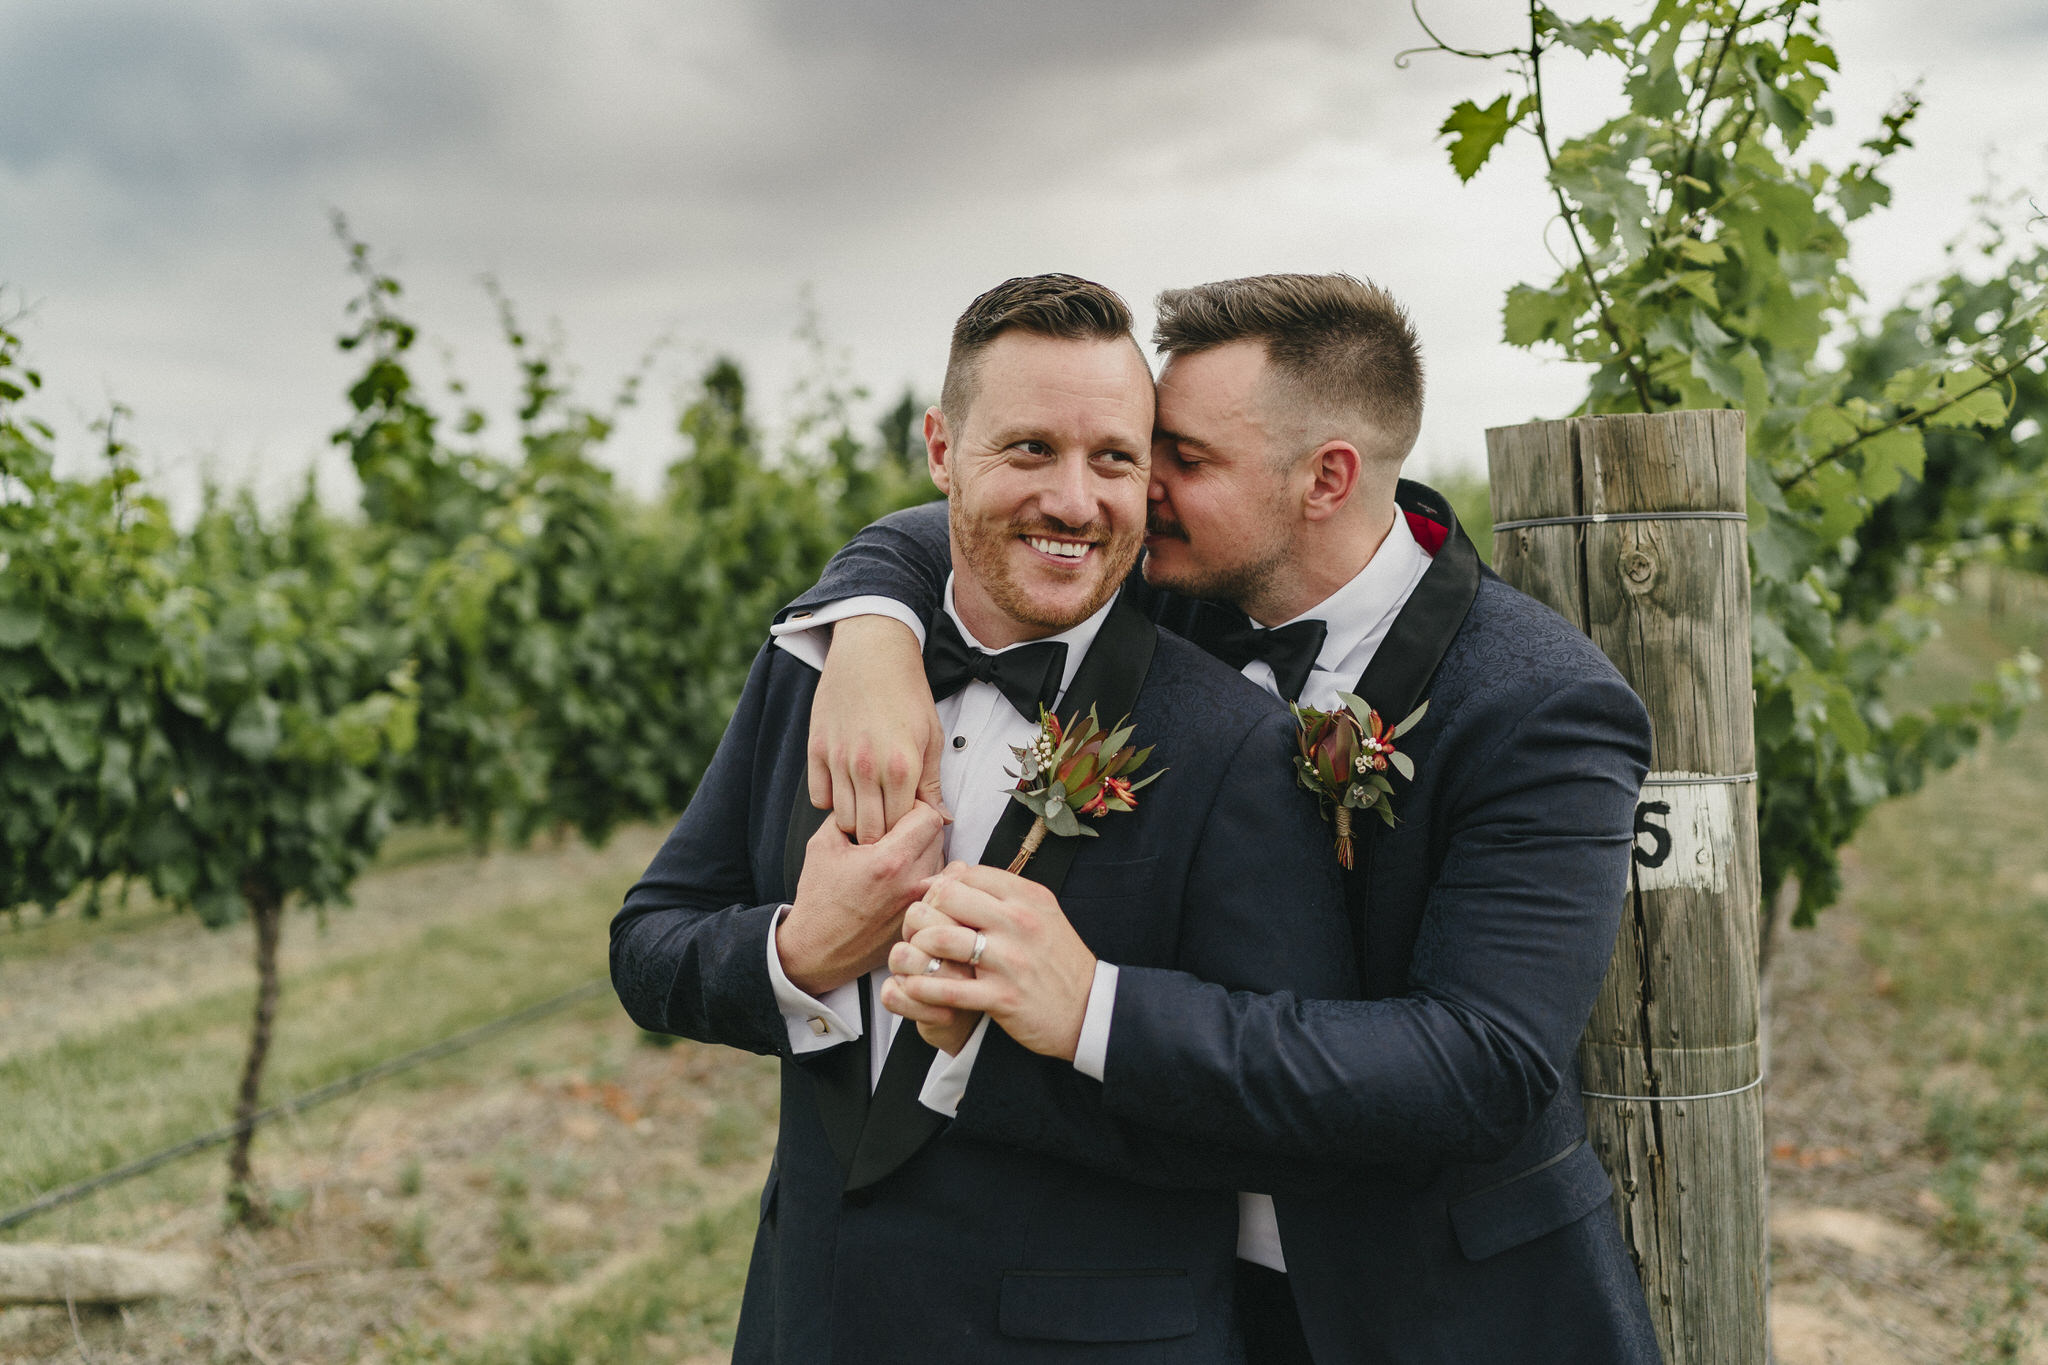 Keeran & Stephen, Mitchelton Wines